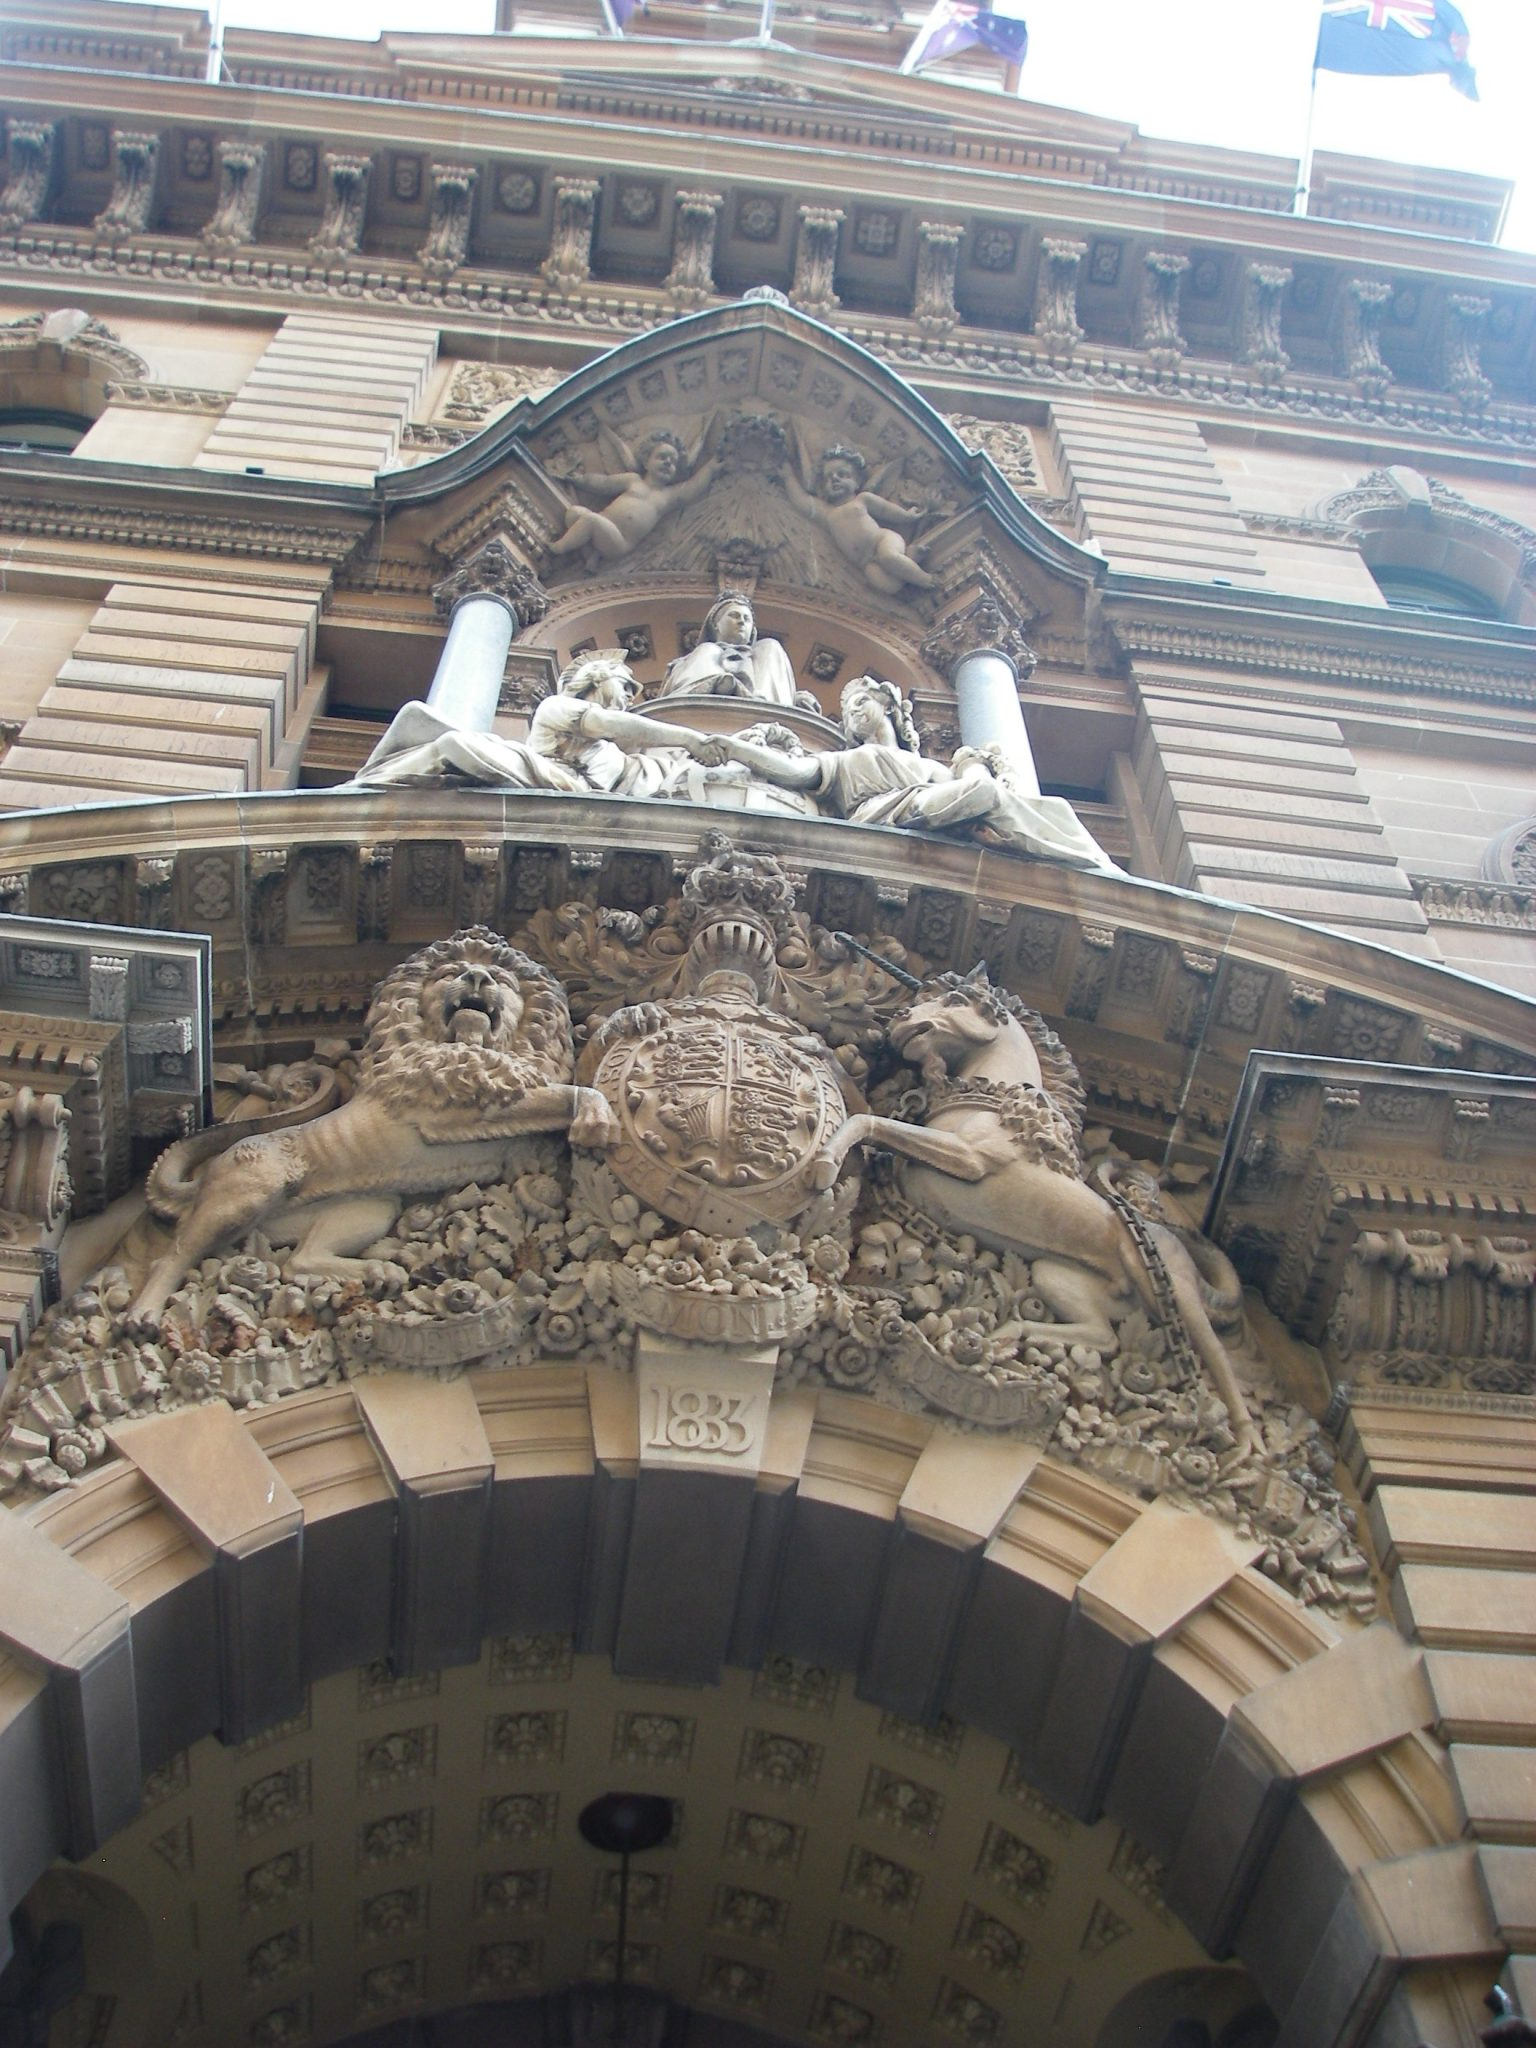 46. Sydney's Queen Victoria Building was built in 1886 to honor the regent upon her visit to Australia